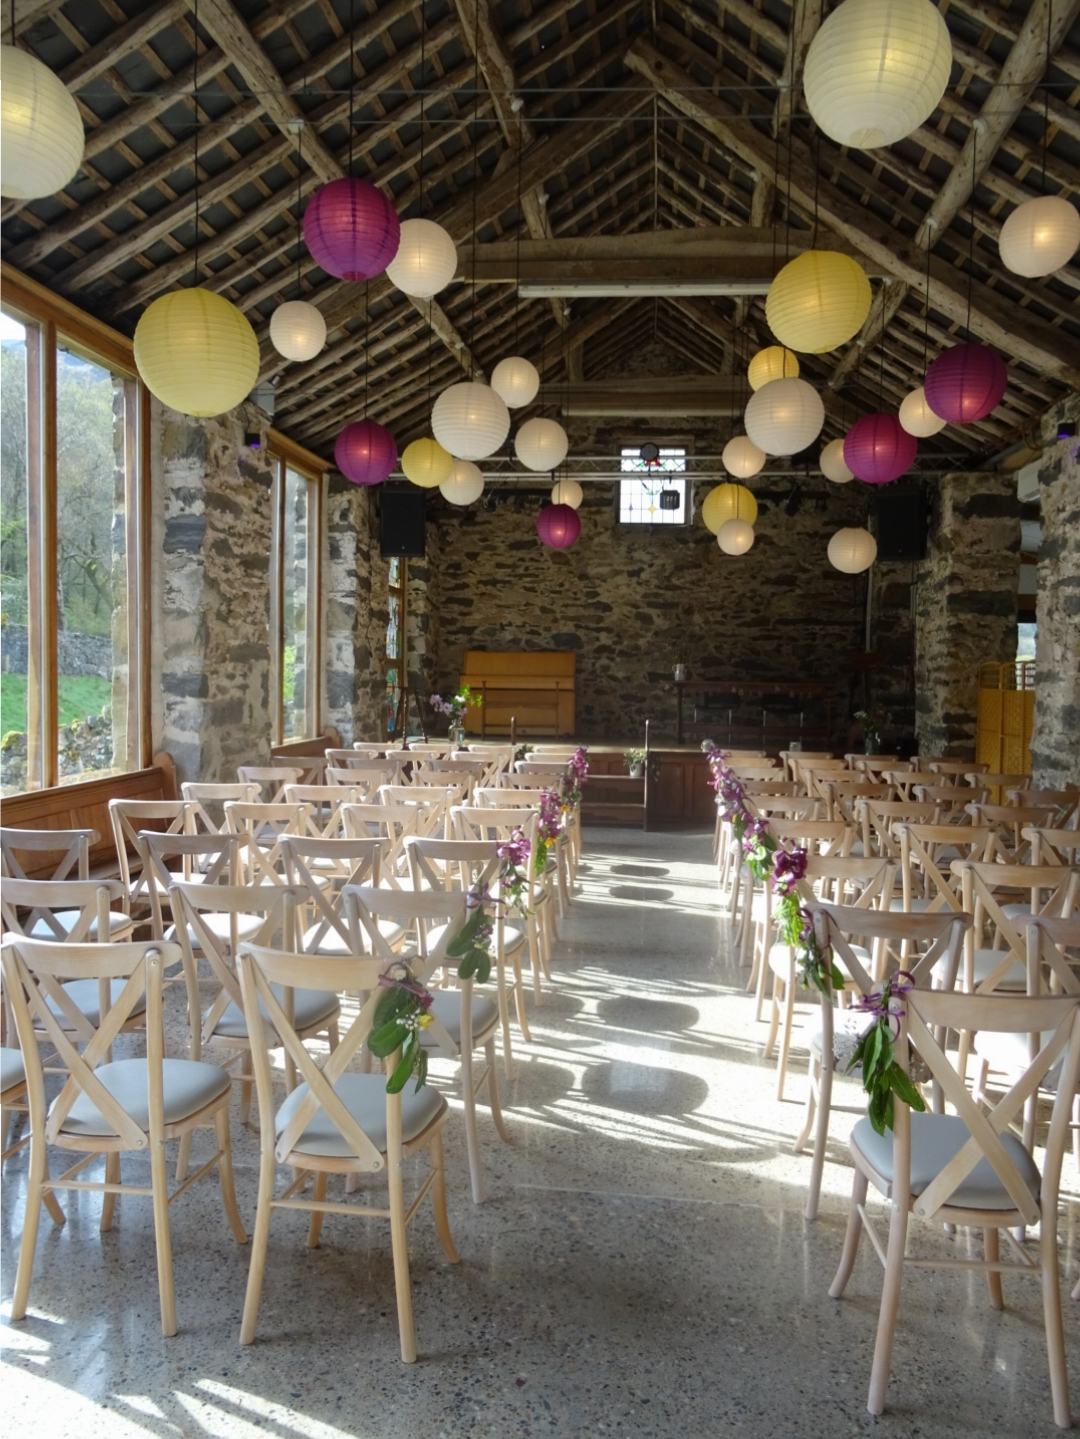 light fills the big barn as it is prepared for a wedding